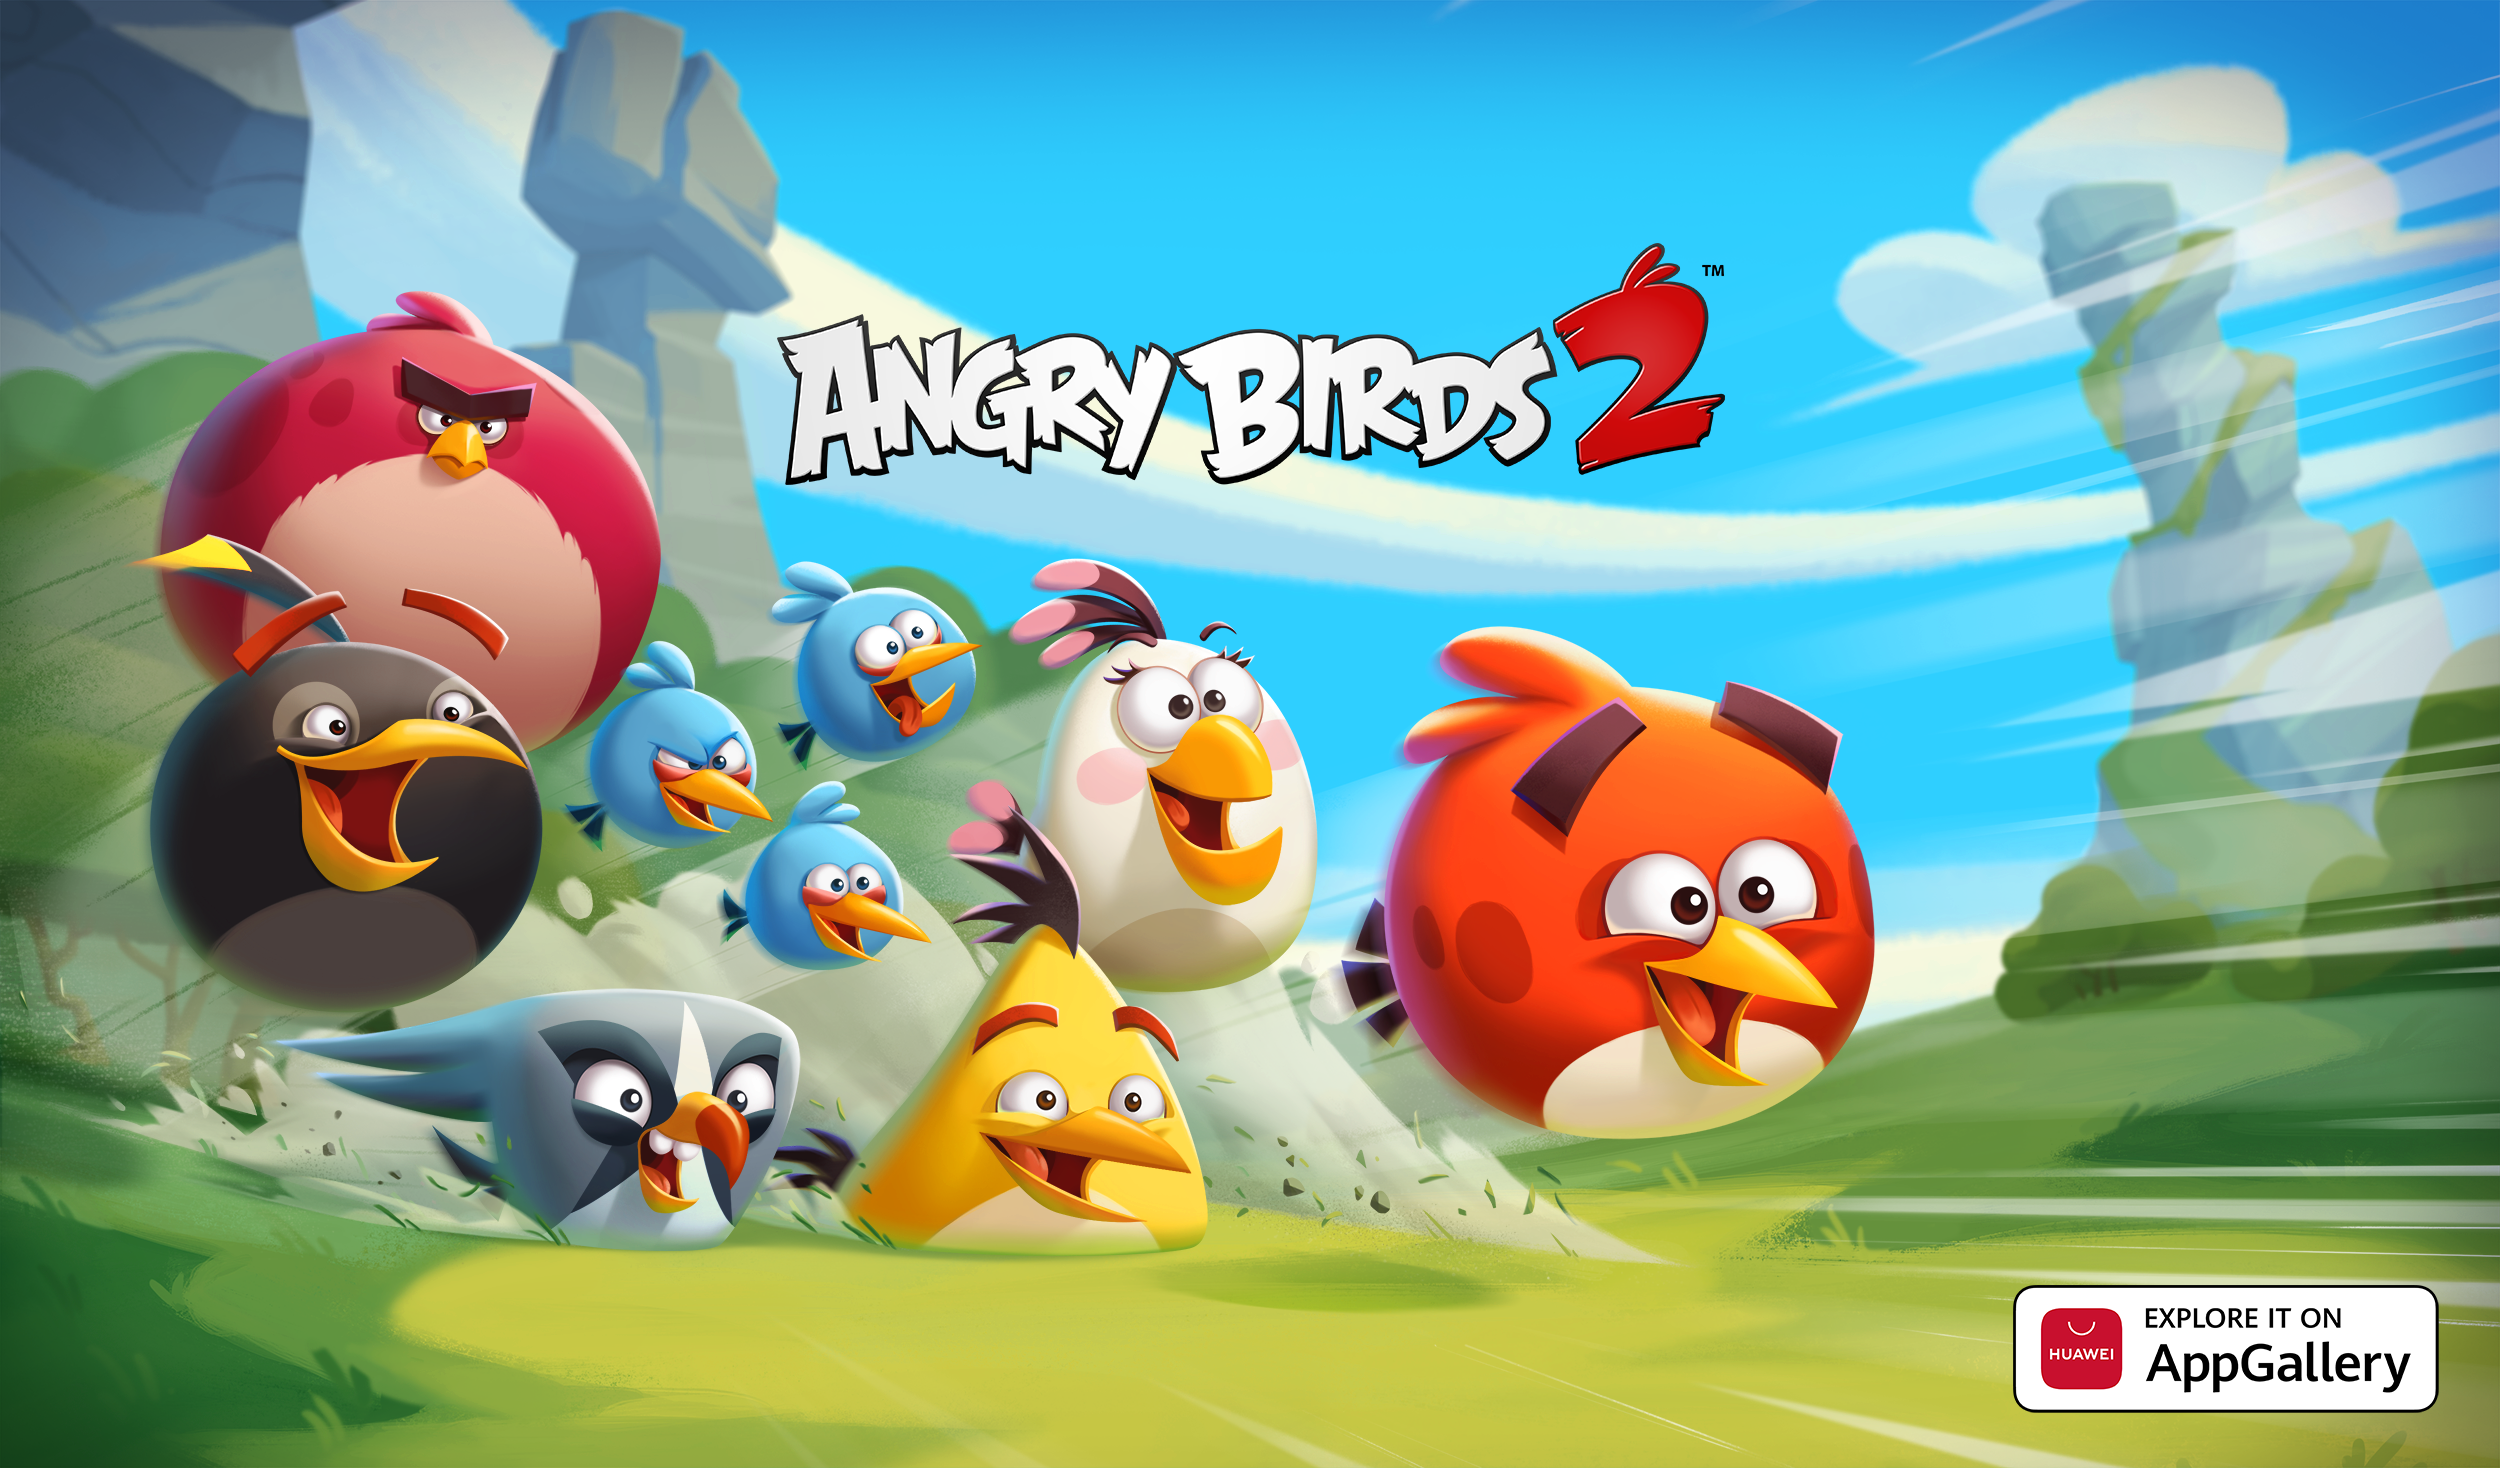 Angry Birds 2 – AppGallery (2)